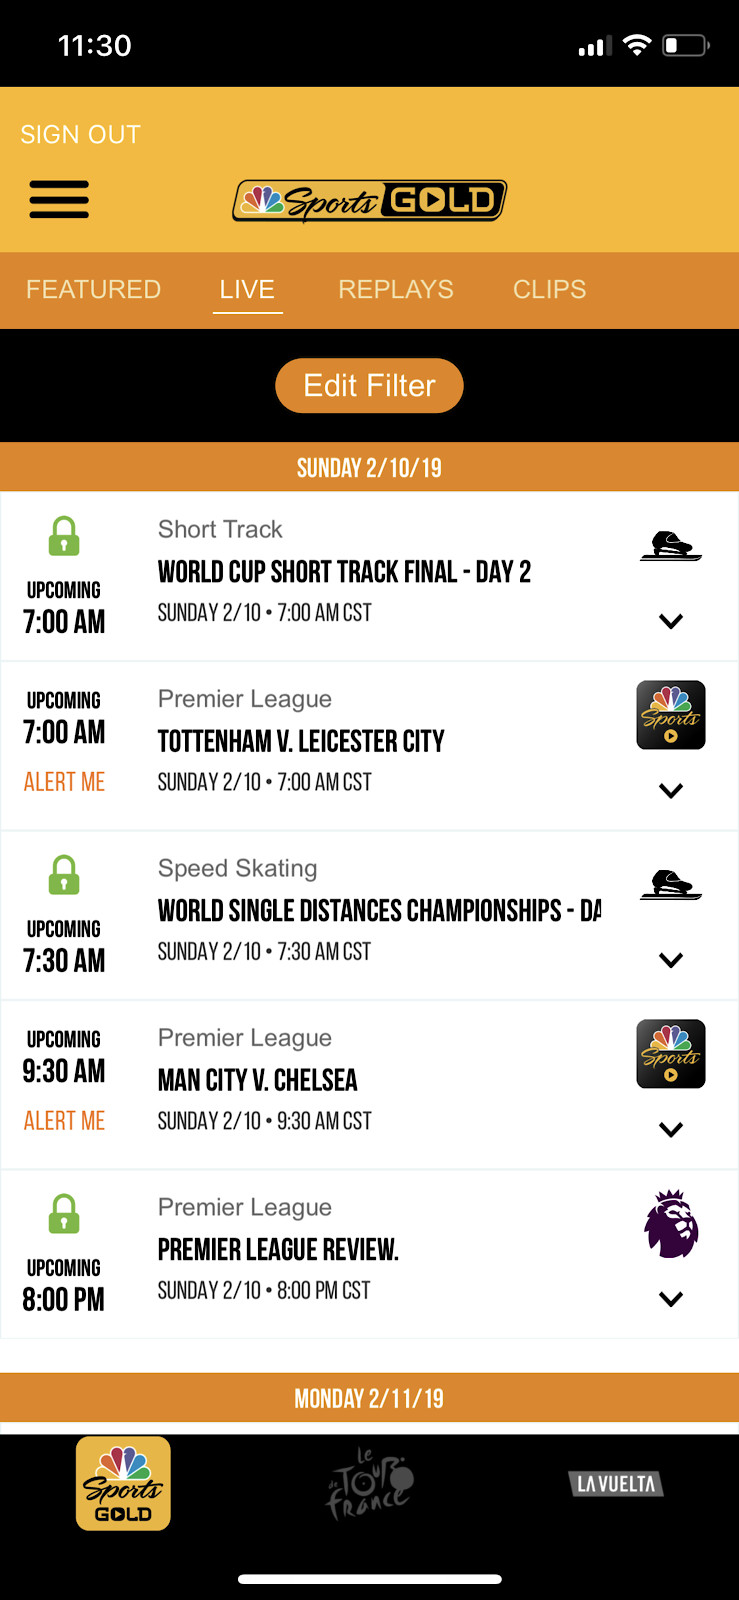 Qualifying/main race not showing in my nbc gold app today